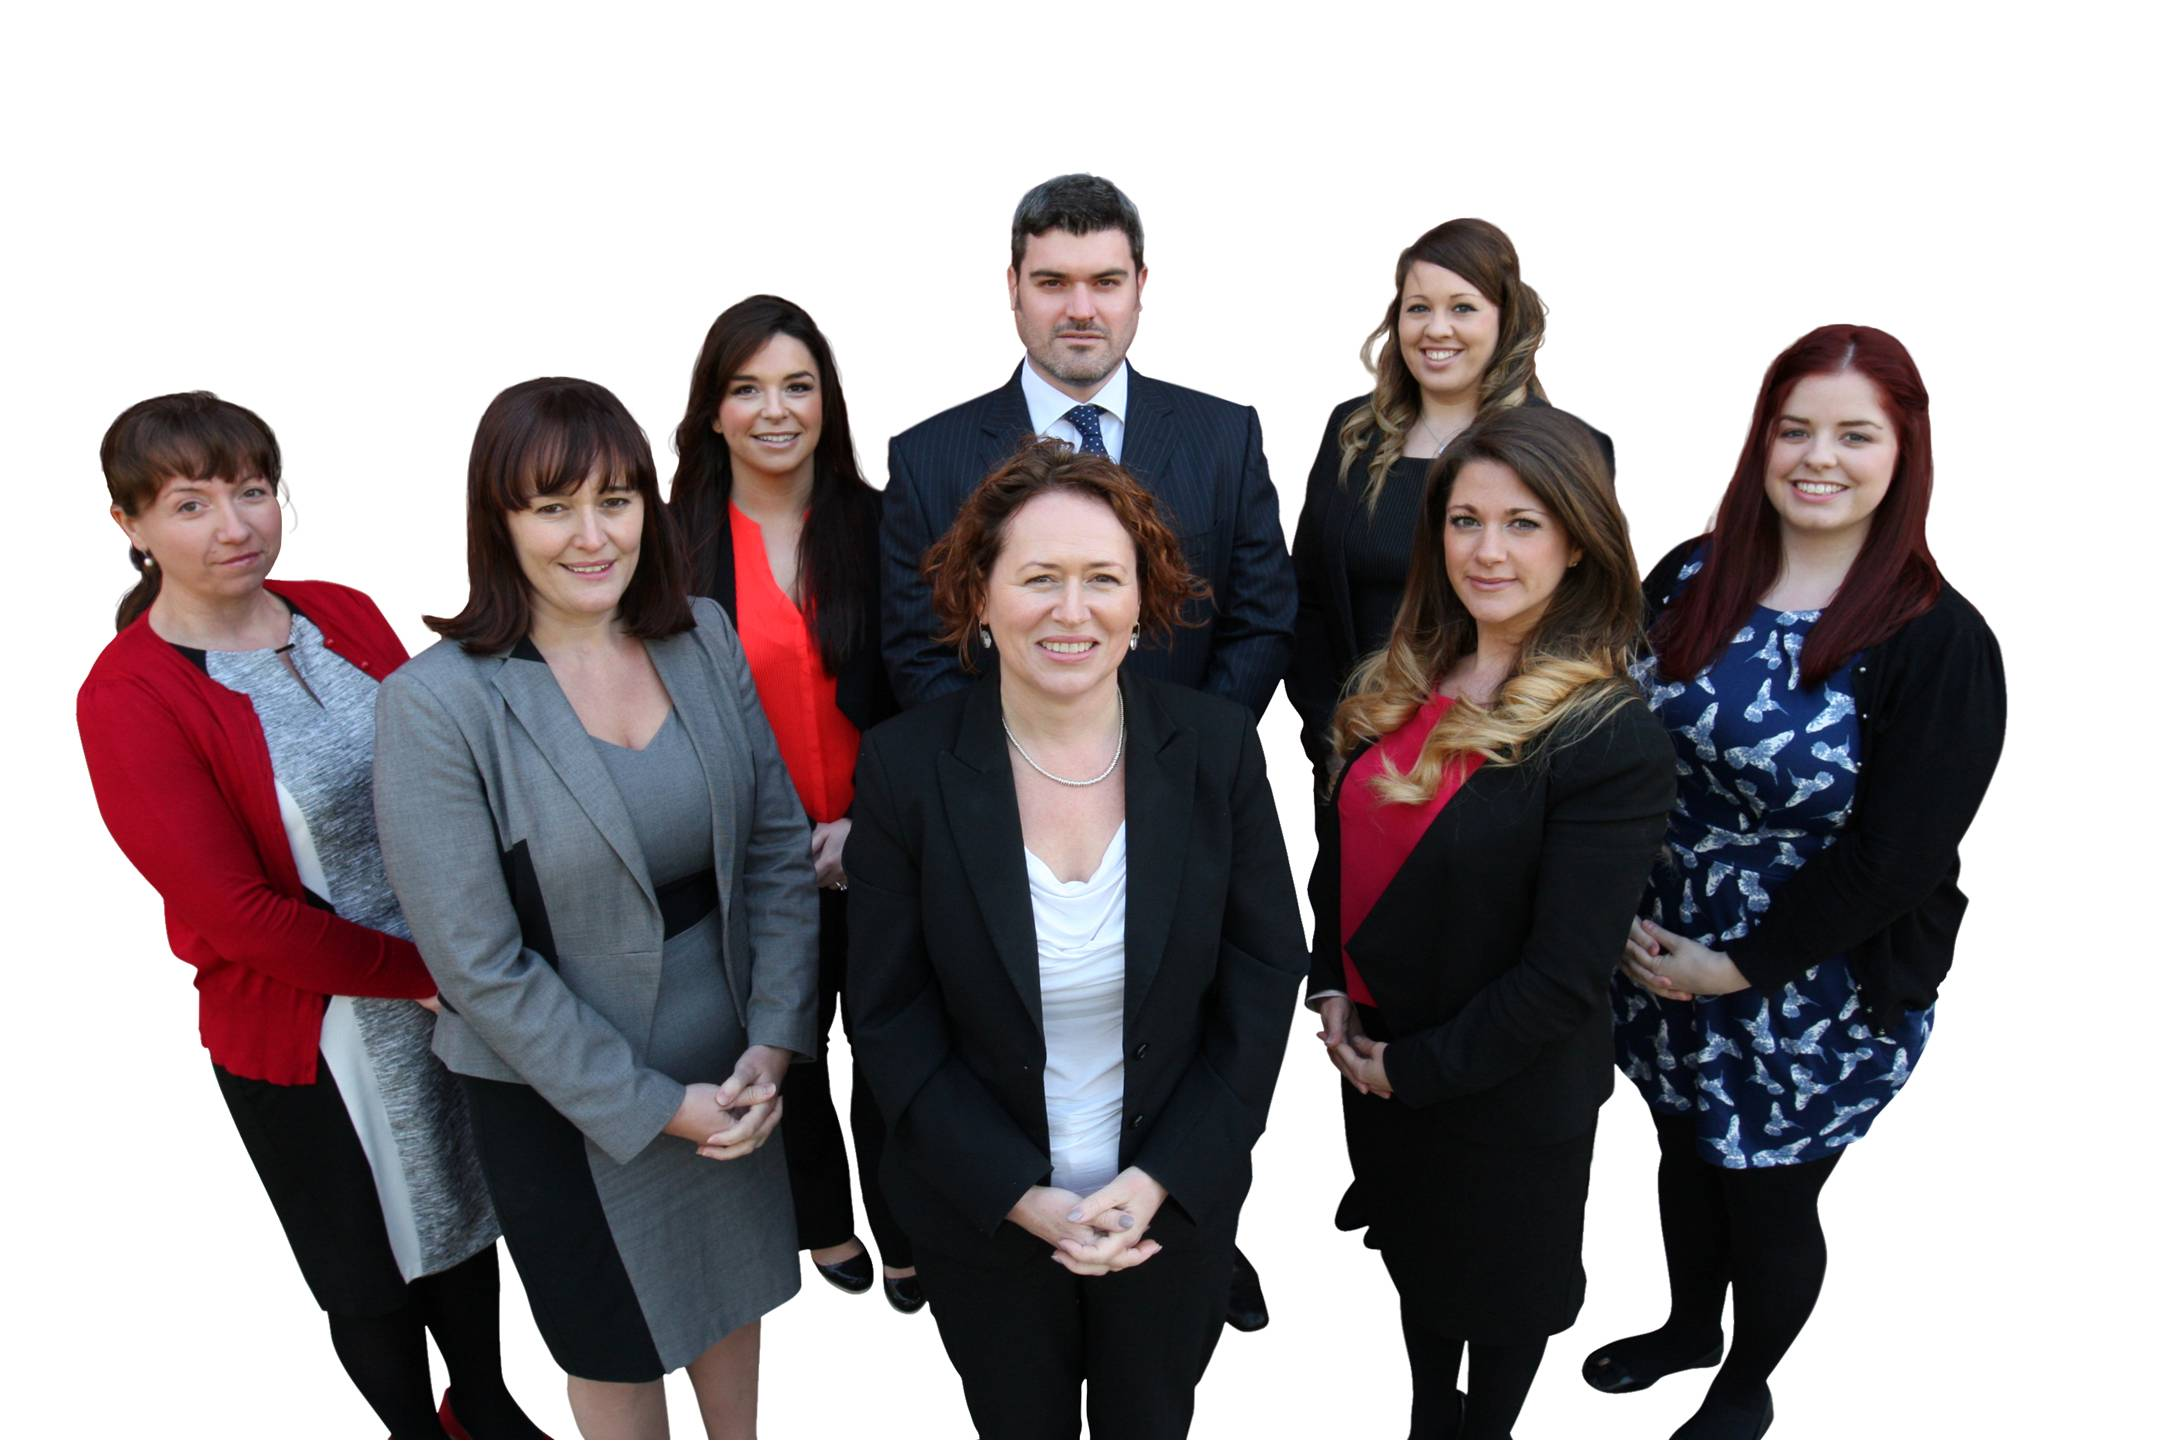 Our Cardiac Surgery expert team. We deal with medical negligence claims arising from Cardiac Surgery.